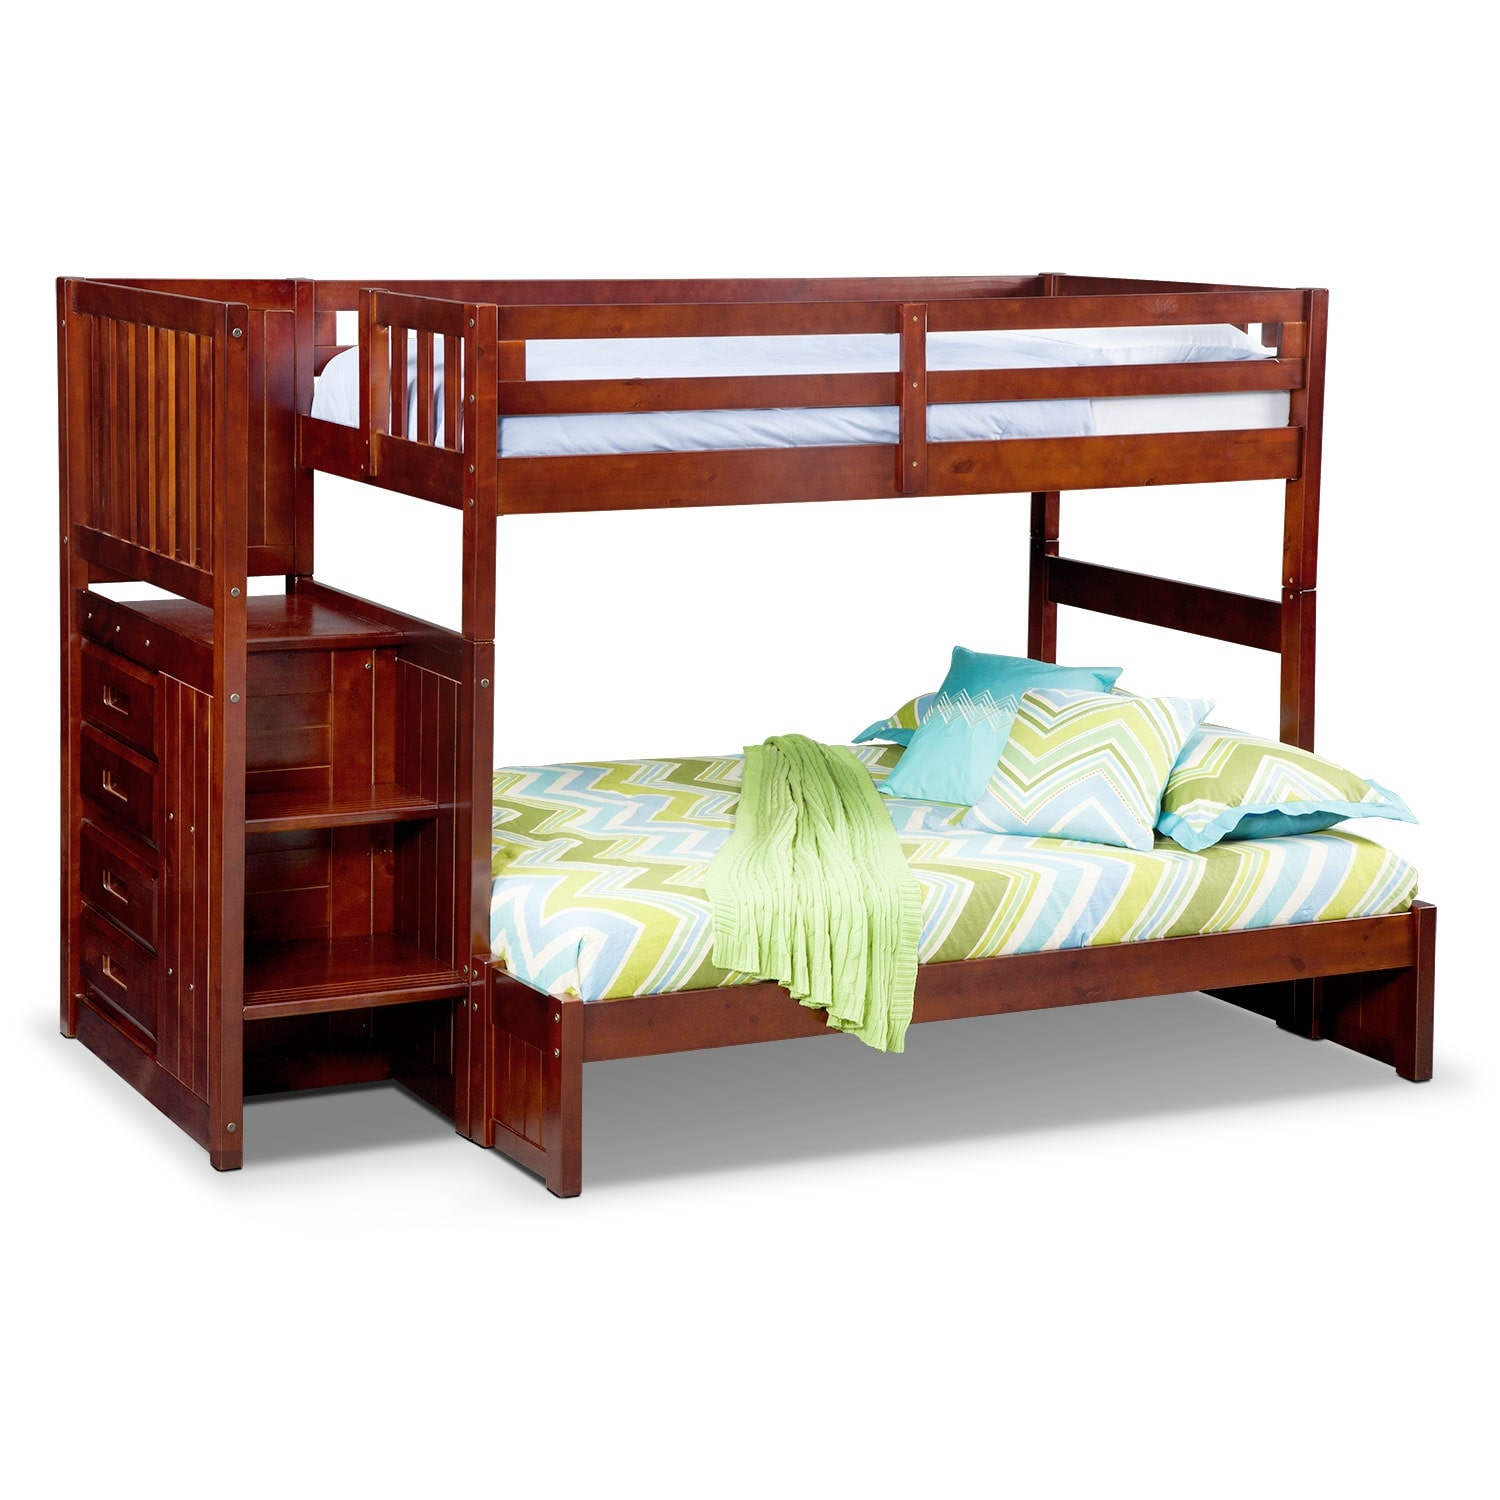 No Reviewswrite The First Review Kids Furniture Ranger Twin Over Full Bunk Bed With Storage Stairs